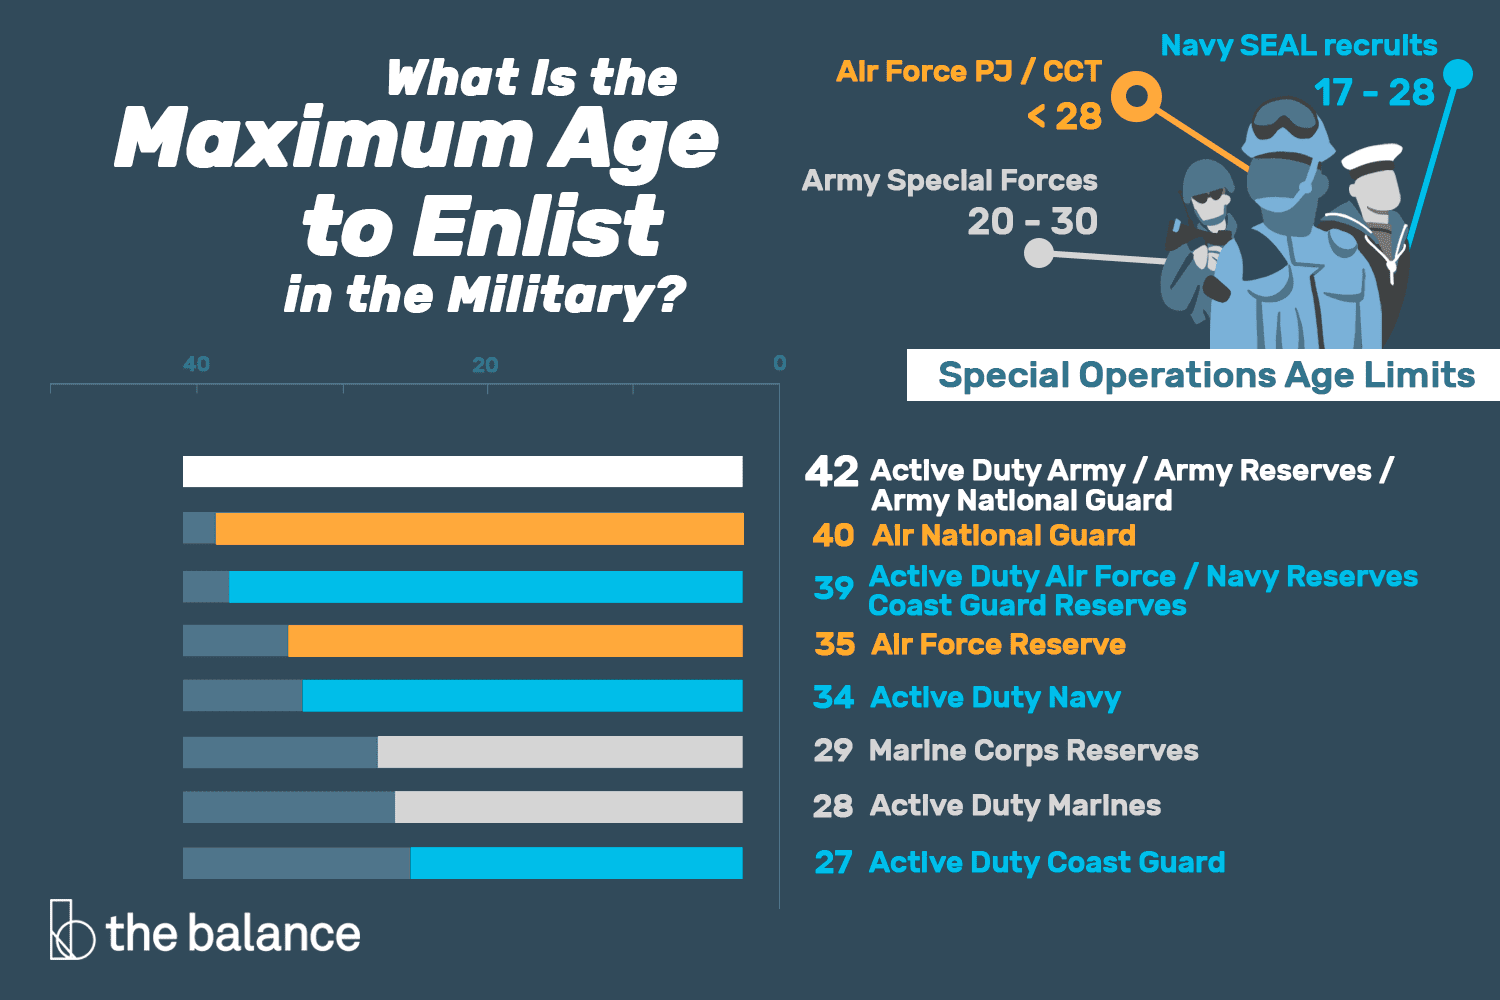 What Is The Maximum Age To Enlist In The Military